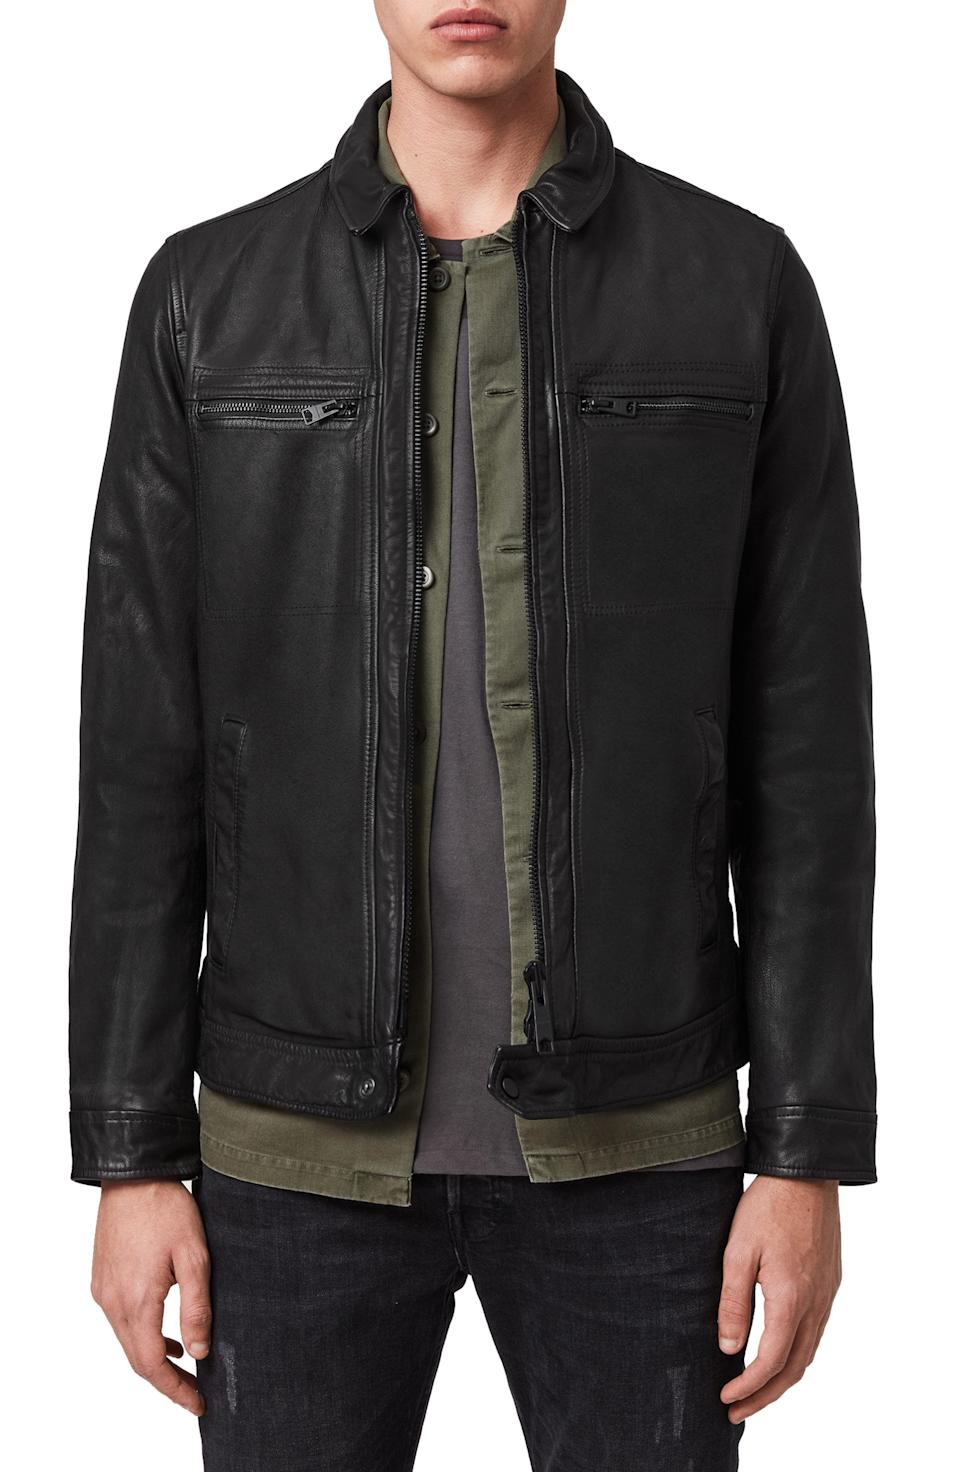 """<p><strong>ALLSAINTS</strong></p><p>nordstrom.com</p><p><a href=""""https://go.redirectingat.com?id=74968X1596630&url=https%3A%2F%2Fshop.nordstrom.com%2Fs%2Fallsaints-lark-leather-jacket%2F5214413&sref=https%3A%2F%2Fwww.esquire.com%2Fstyle%2Fmens-fashion%2Fg37002225%2Fnordstrom-anniversary-sale-mens-fashion-deals-2021%2F"""" rel=""""nofollow noopener"""" target=""""_blank"""" data-ylk=""""slk:Shop Now"""" class=""""link rapid-noclick-resp"""">Shop Now</a></p><p><strong>Sale: </strong><strong>$299.90</strong></p><p><strong>After Sale: $529.00</strong></p><p>Fall is near, and you need a leather jacket. So, get this mighty fine one while the getting is good. </p>"""